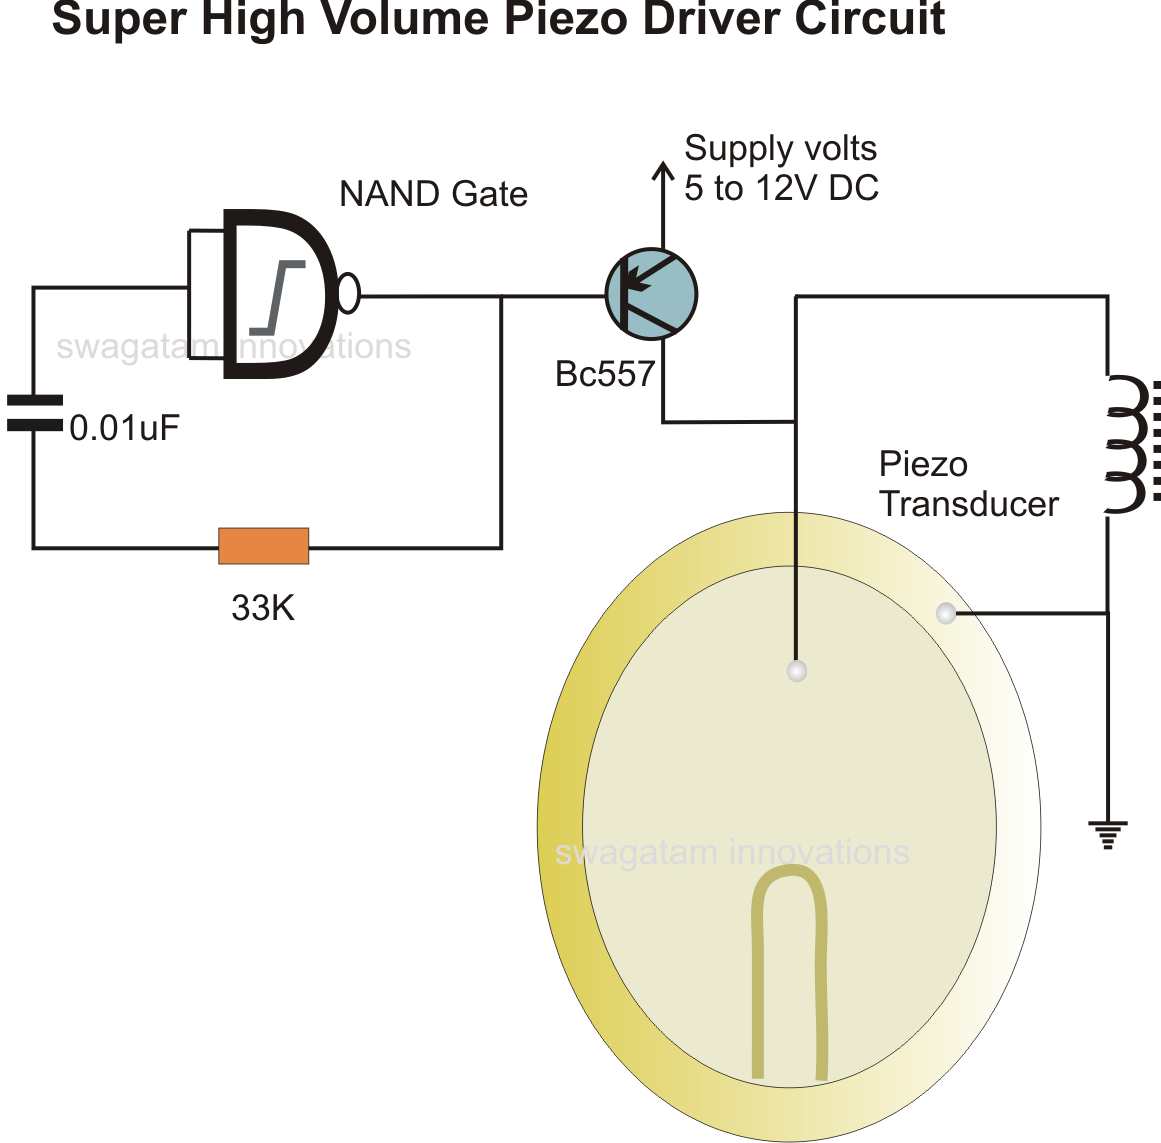 Audio  lifier For Portable Radio Receiver further Diy Workshop Build Your Own Attenuator besides Simplest Piezo Driver Circuit Explained also 20160026 in addition Lm358 Mic. on piezo amplifier circuit